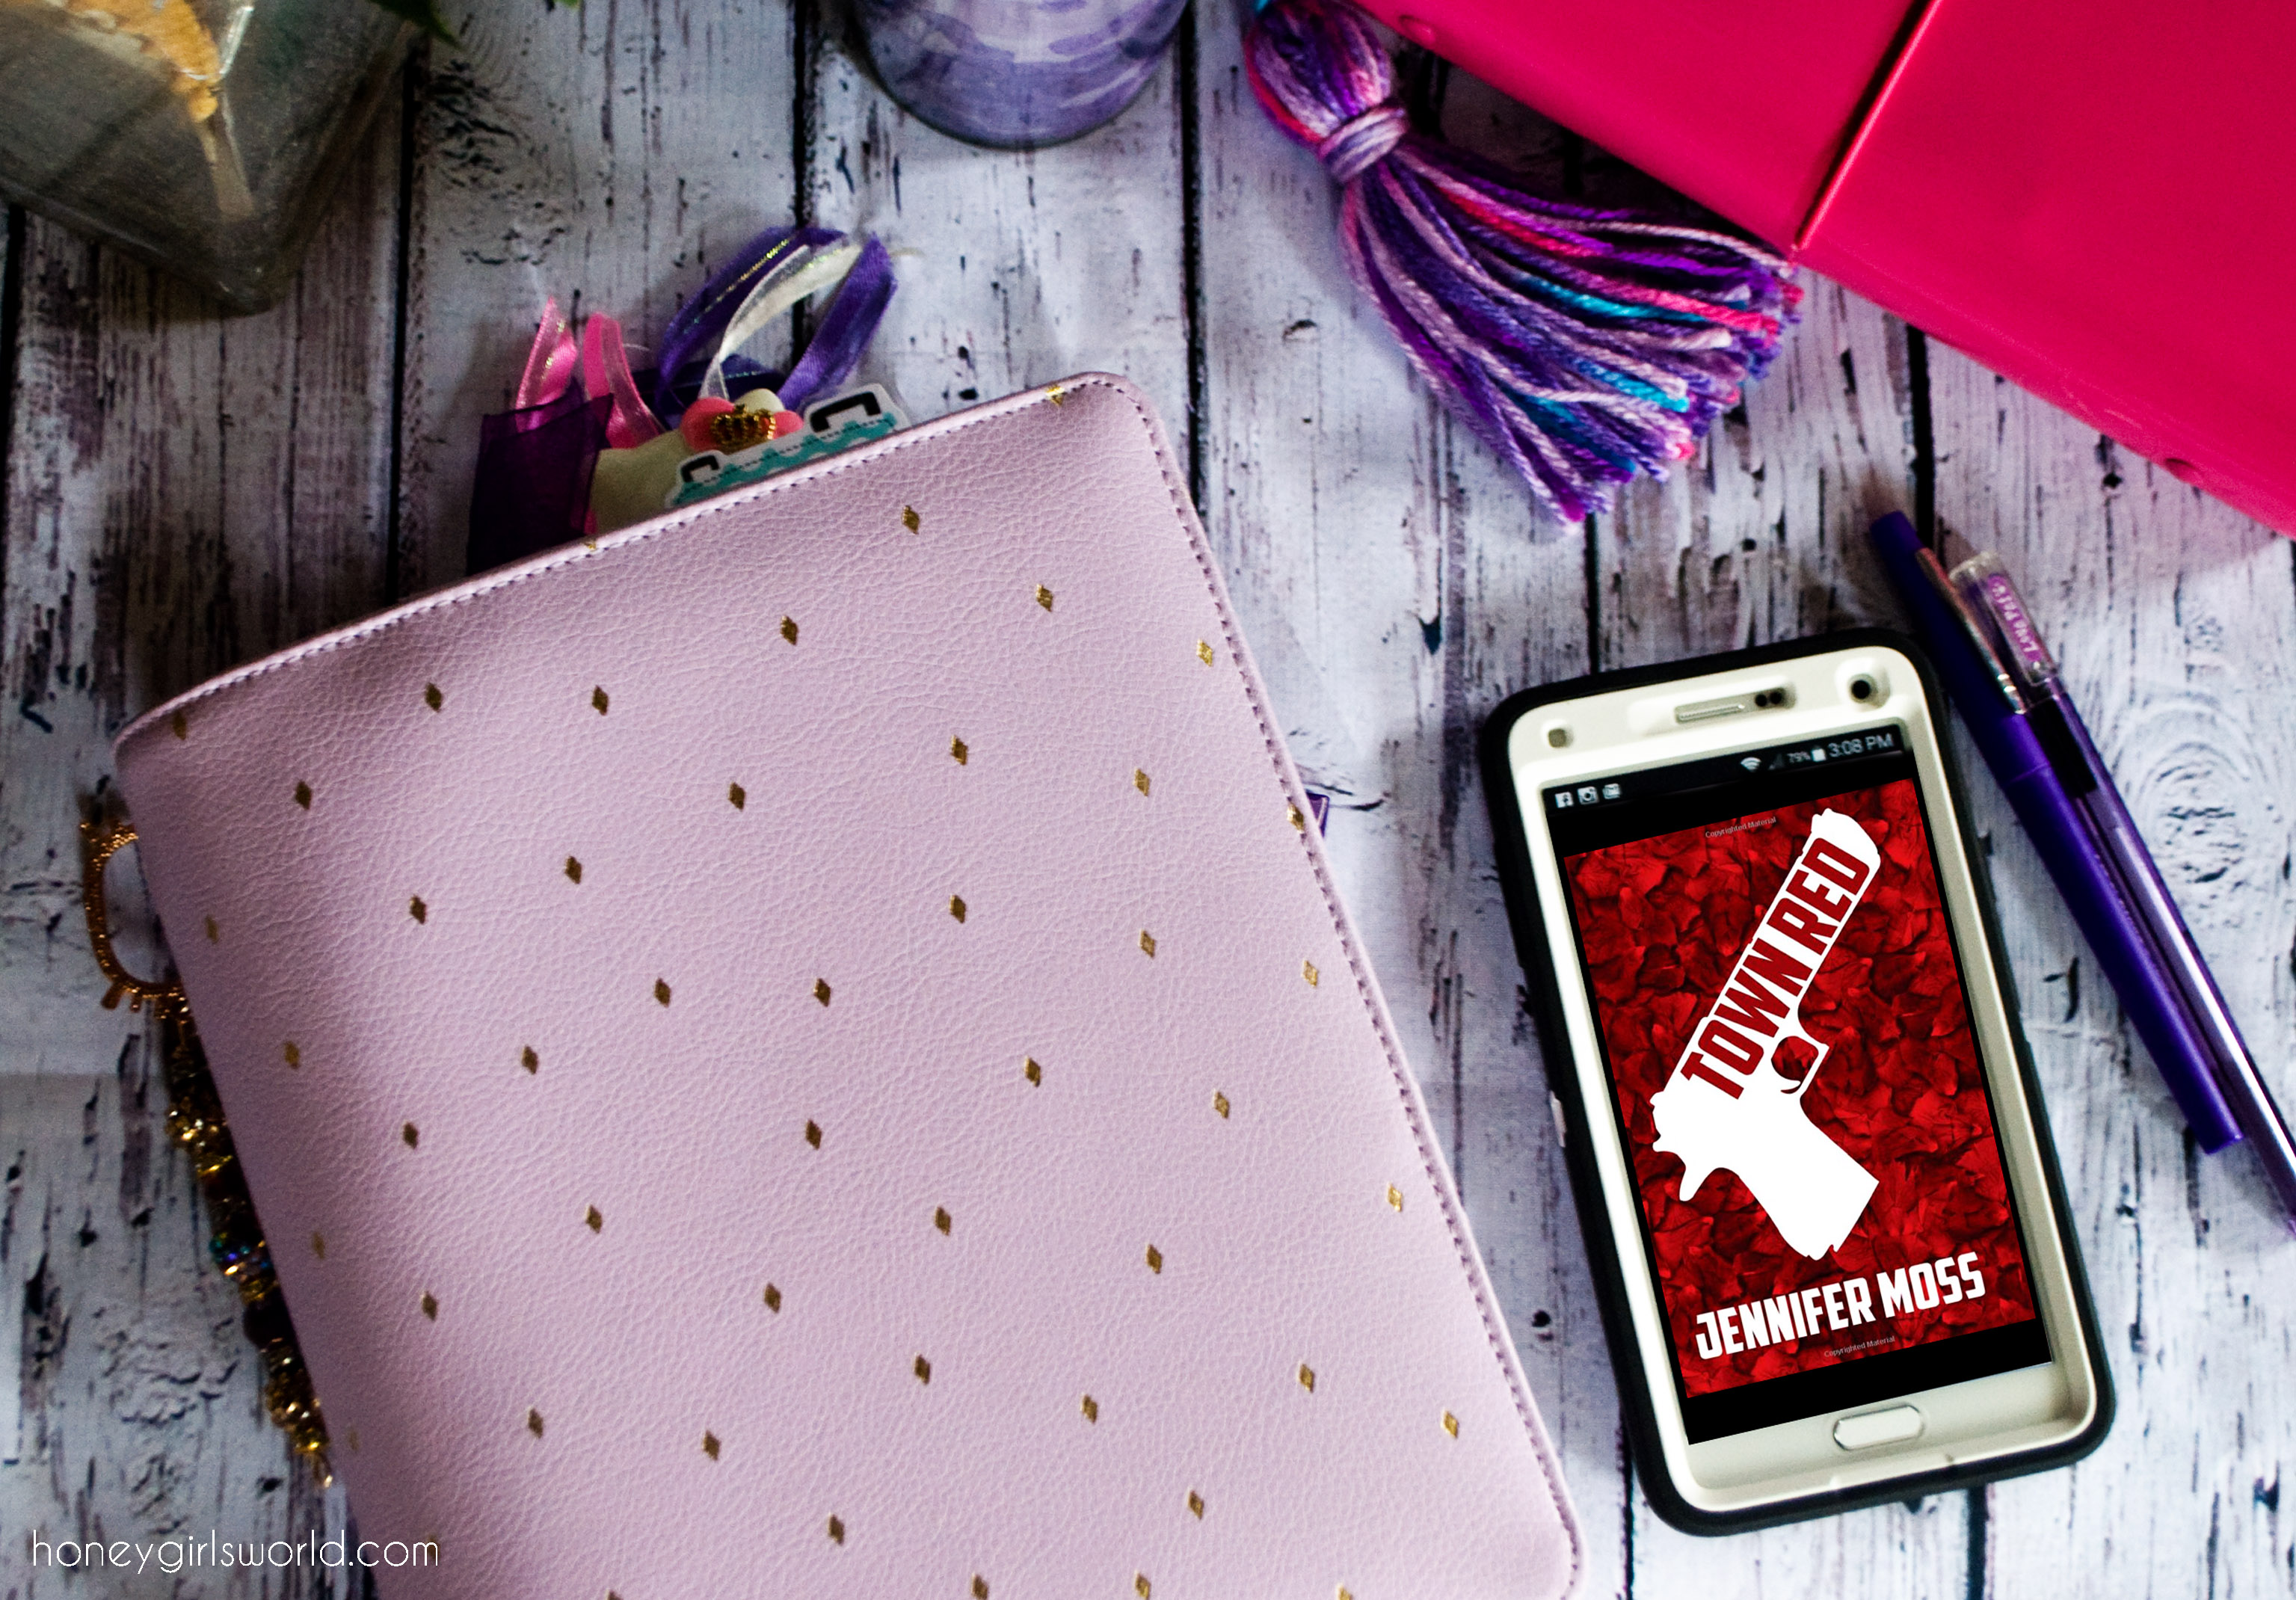 Town Red, Jennifer Moss, Town Red by Jennifer Moss, Book review, review, books, reading, kindle, kindle edition, book talk